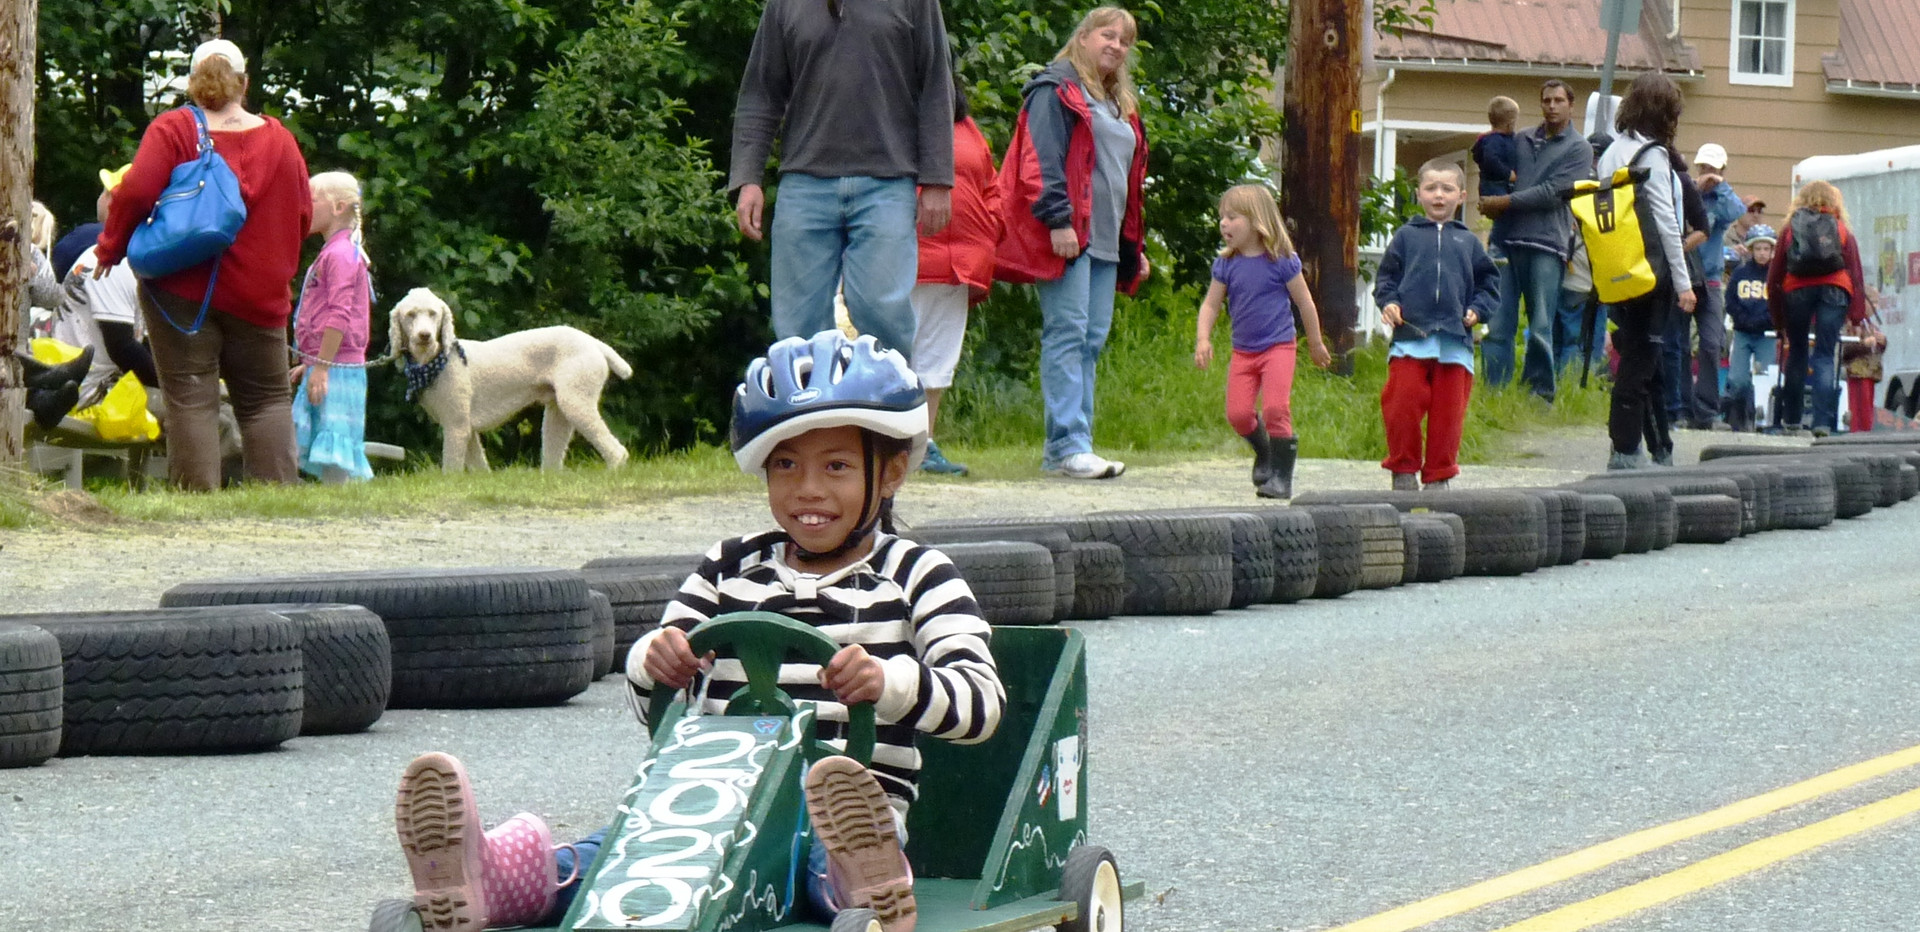 7-4-13-J4-Soapbox-derby-girl-in-Douglas.